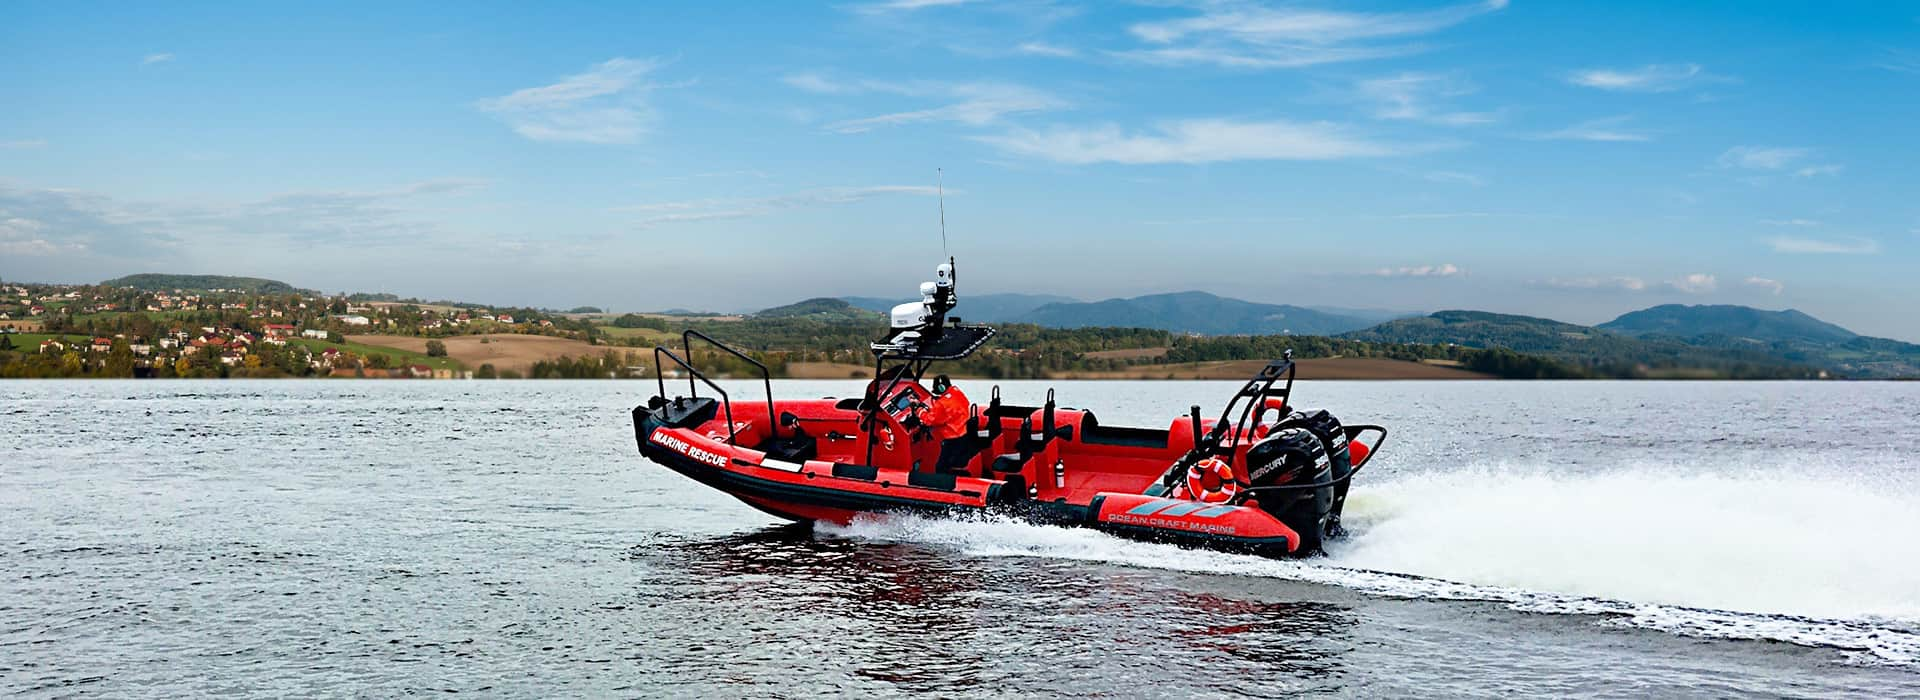 Search and Rescue RHIBs